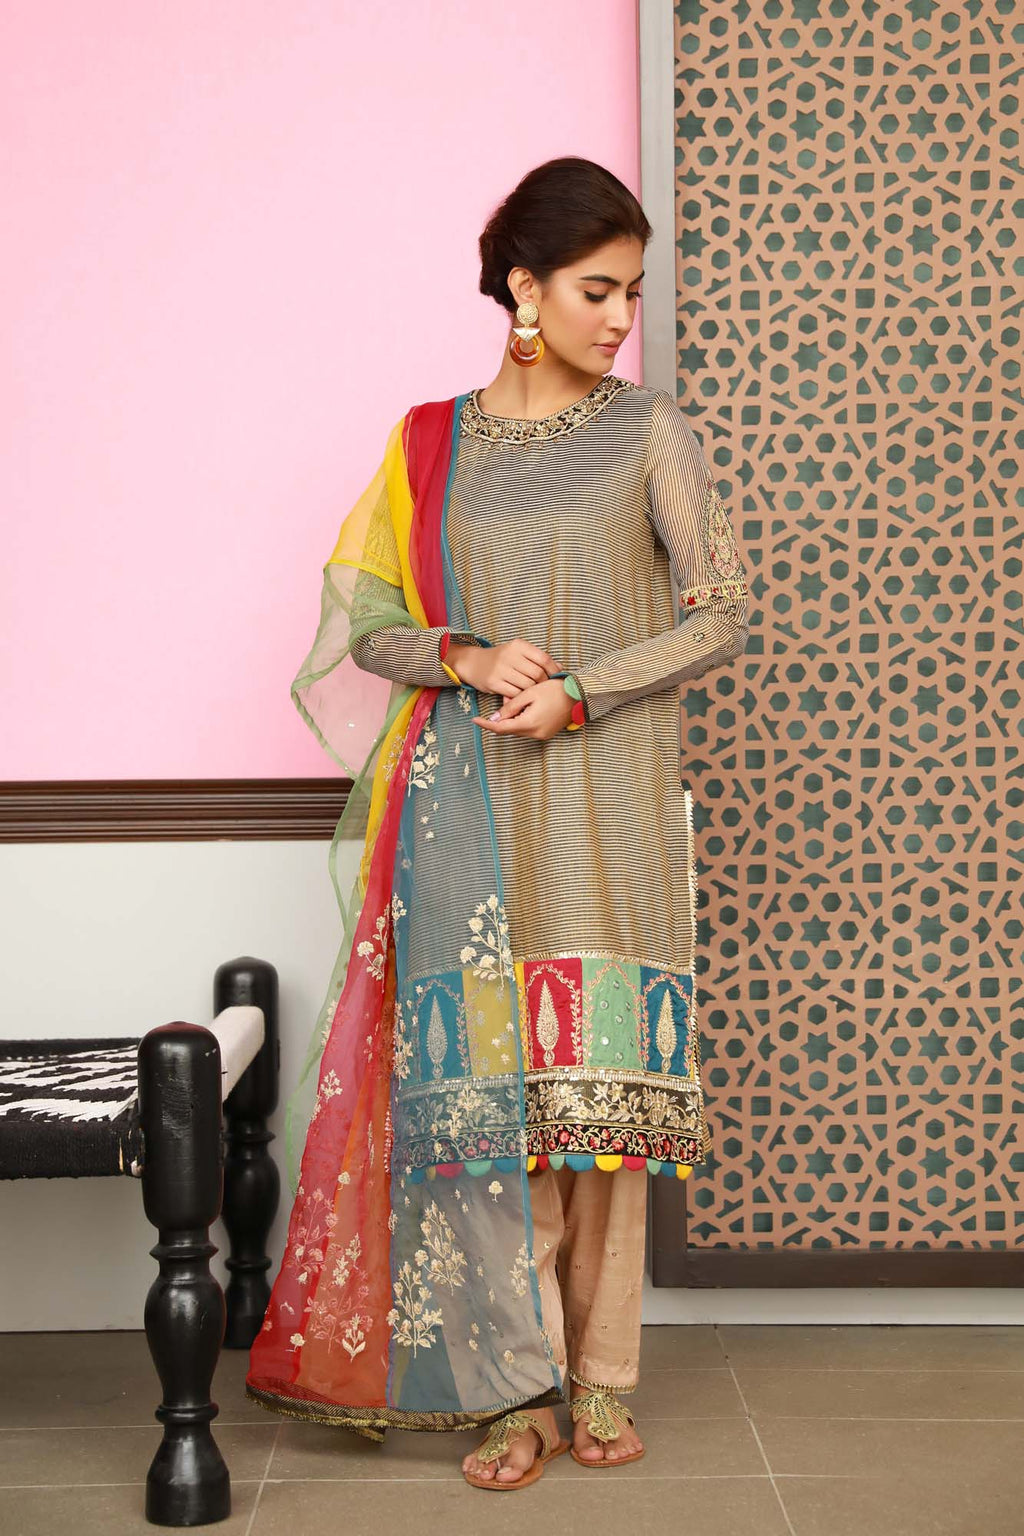 Boutique Suits (Shirt + Dupatta) - Ethnic by Outfitters